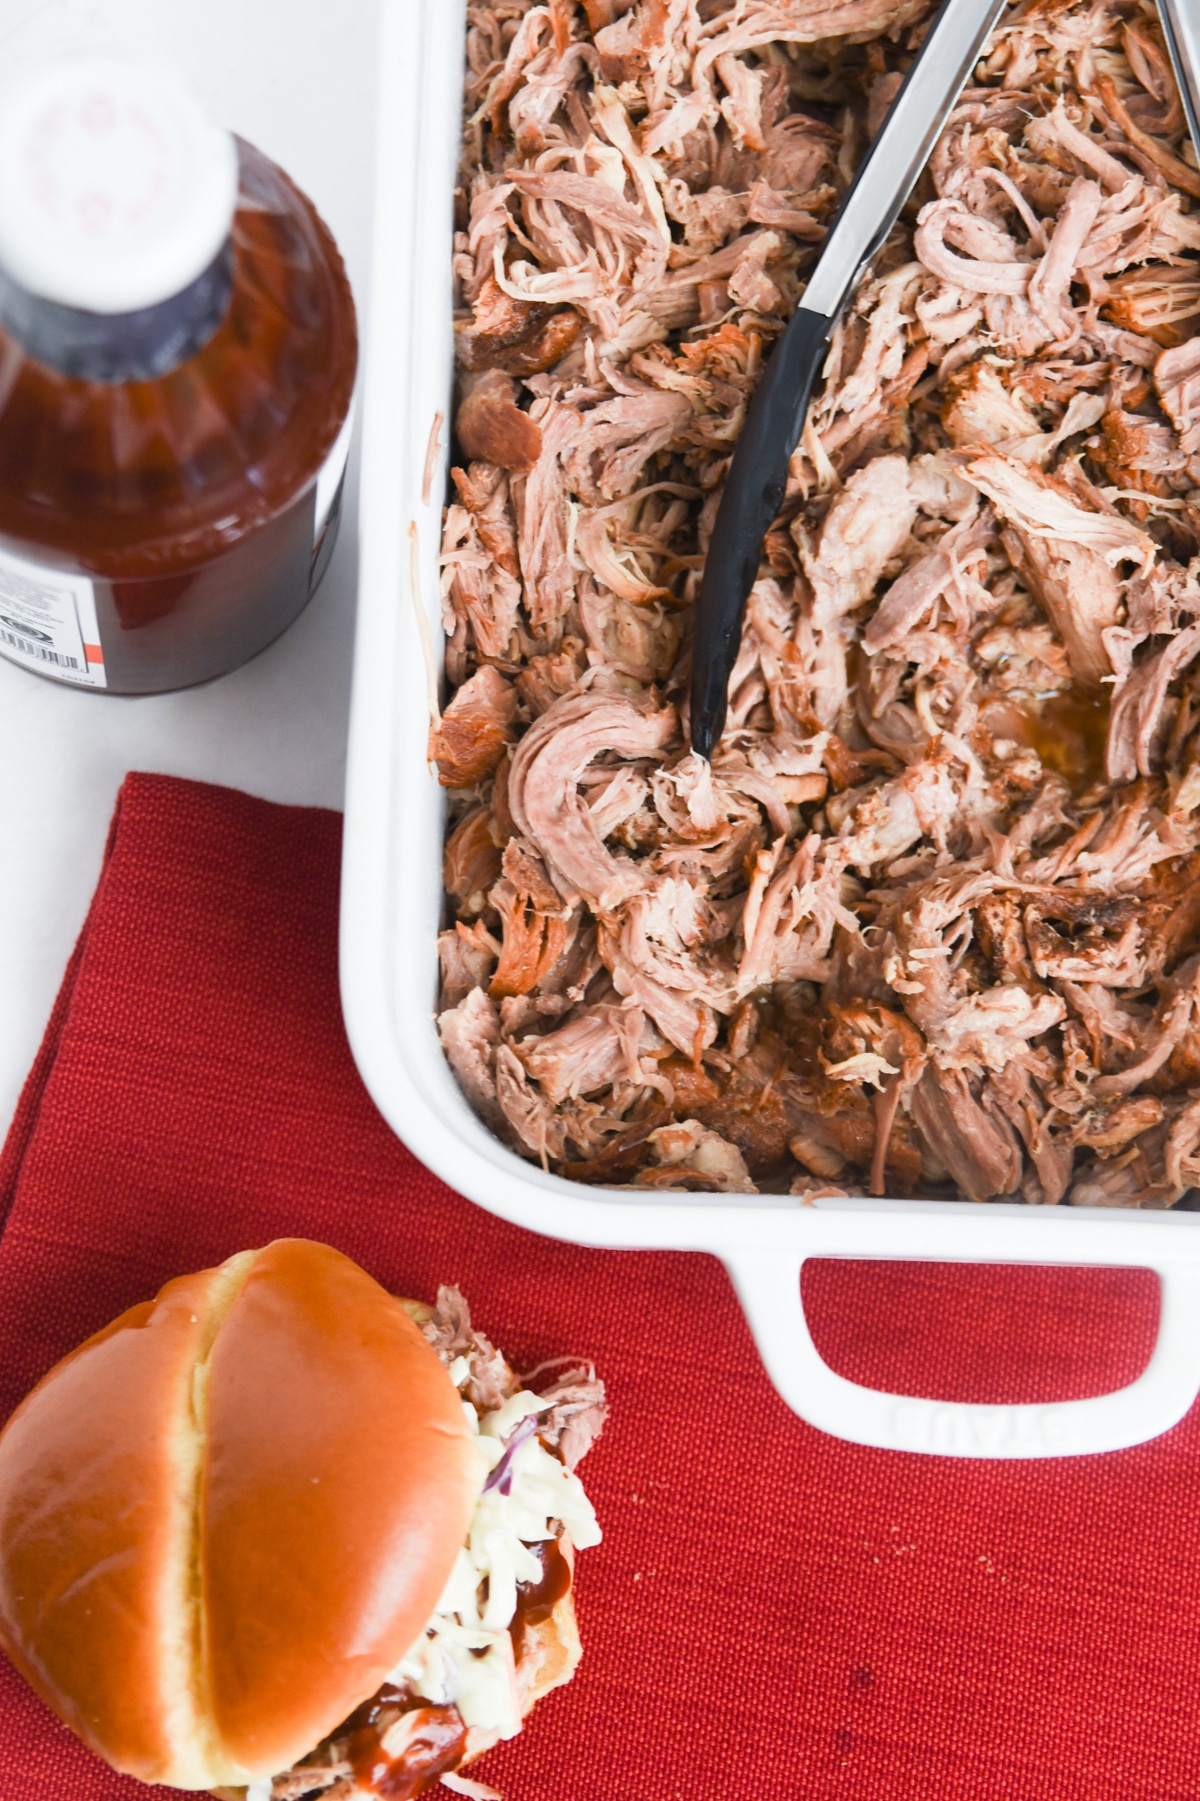 Instant Pot Pulled pork in serving dish